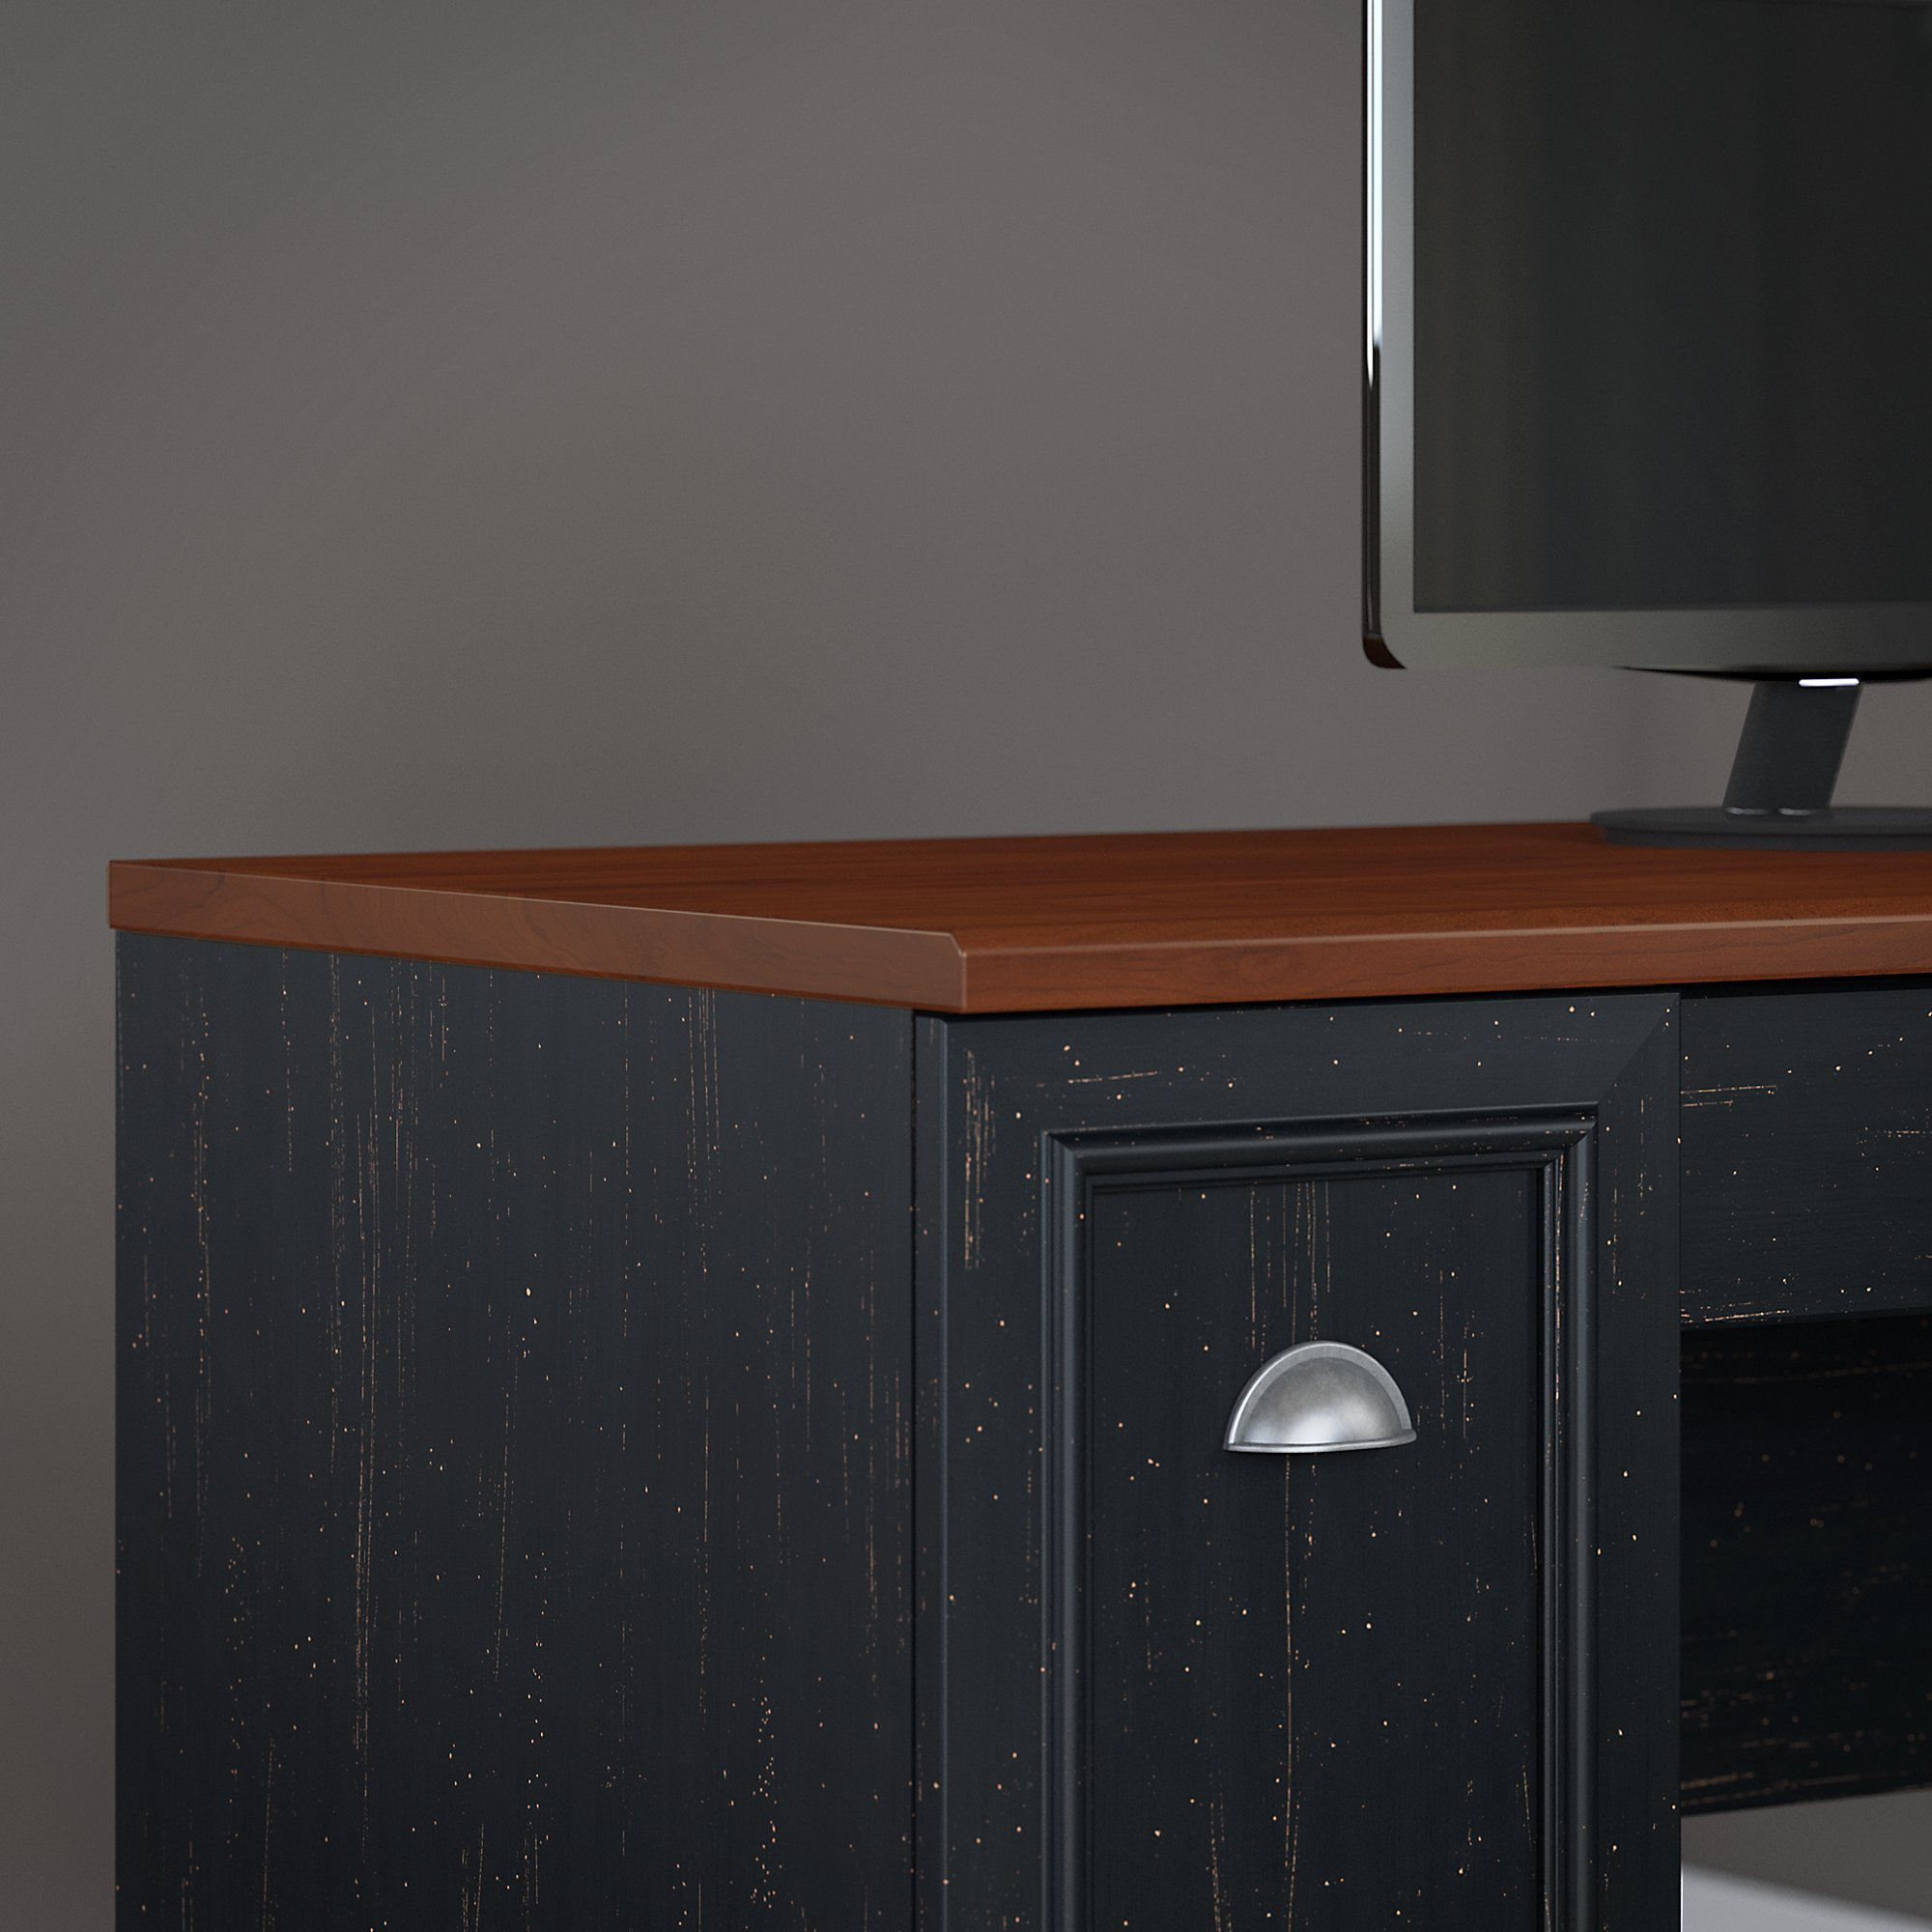 Bush Furniture Fairview 60W L Shaped Desk with Hutch, Storage Cabinets and 5 Shelf Bookcase in Antique Black and Hansen Cherry by Bush Furniture (Image #4)